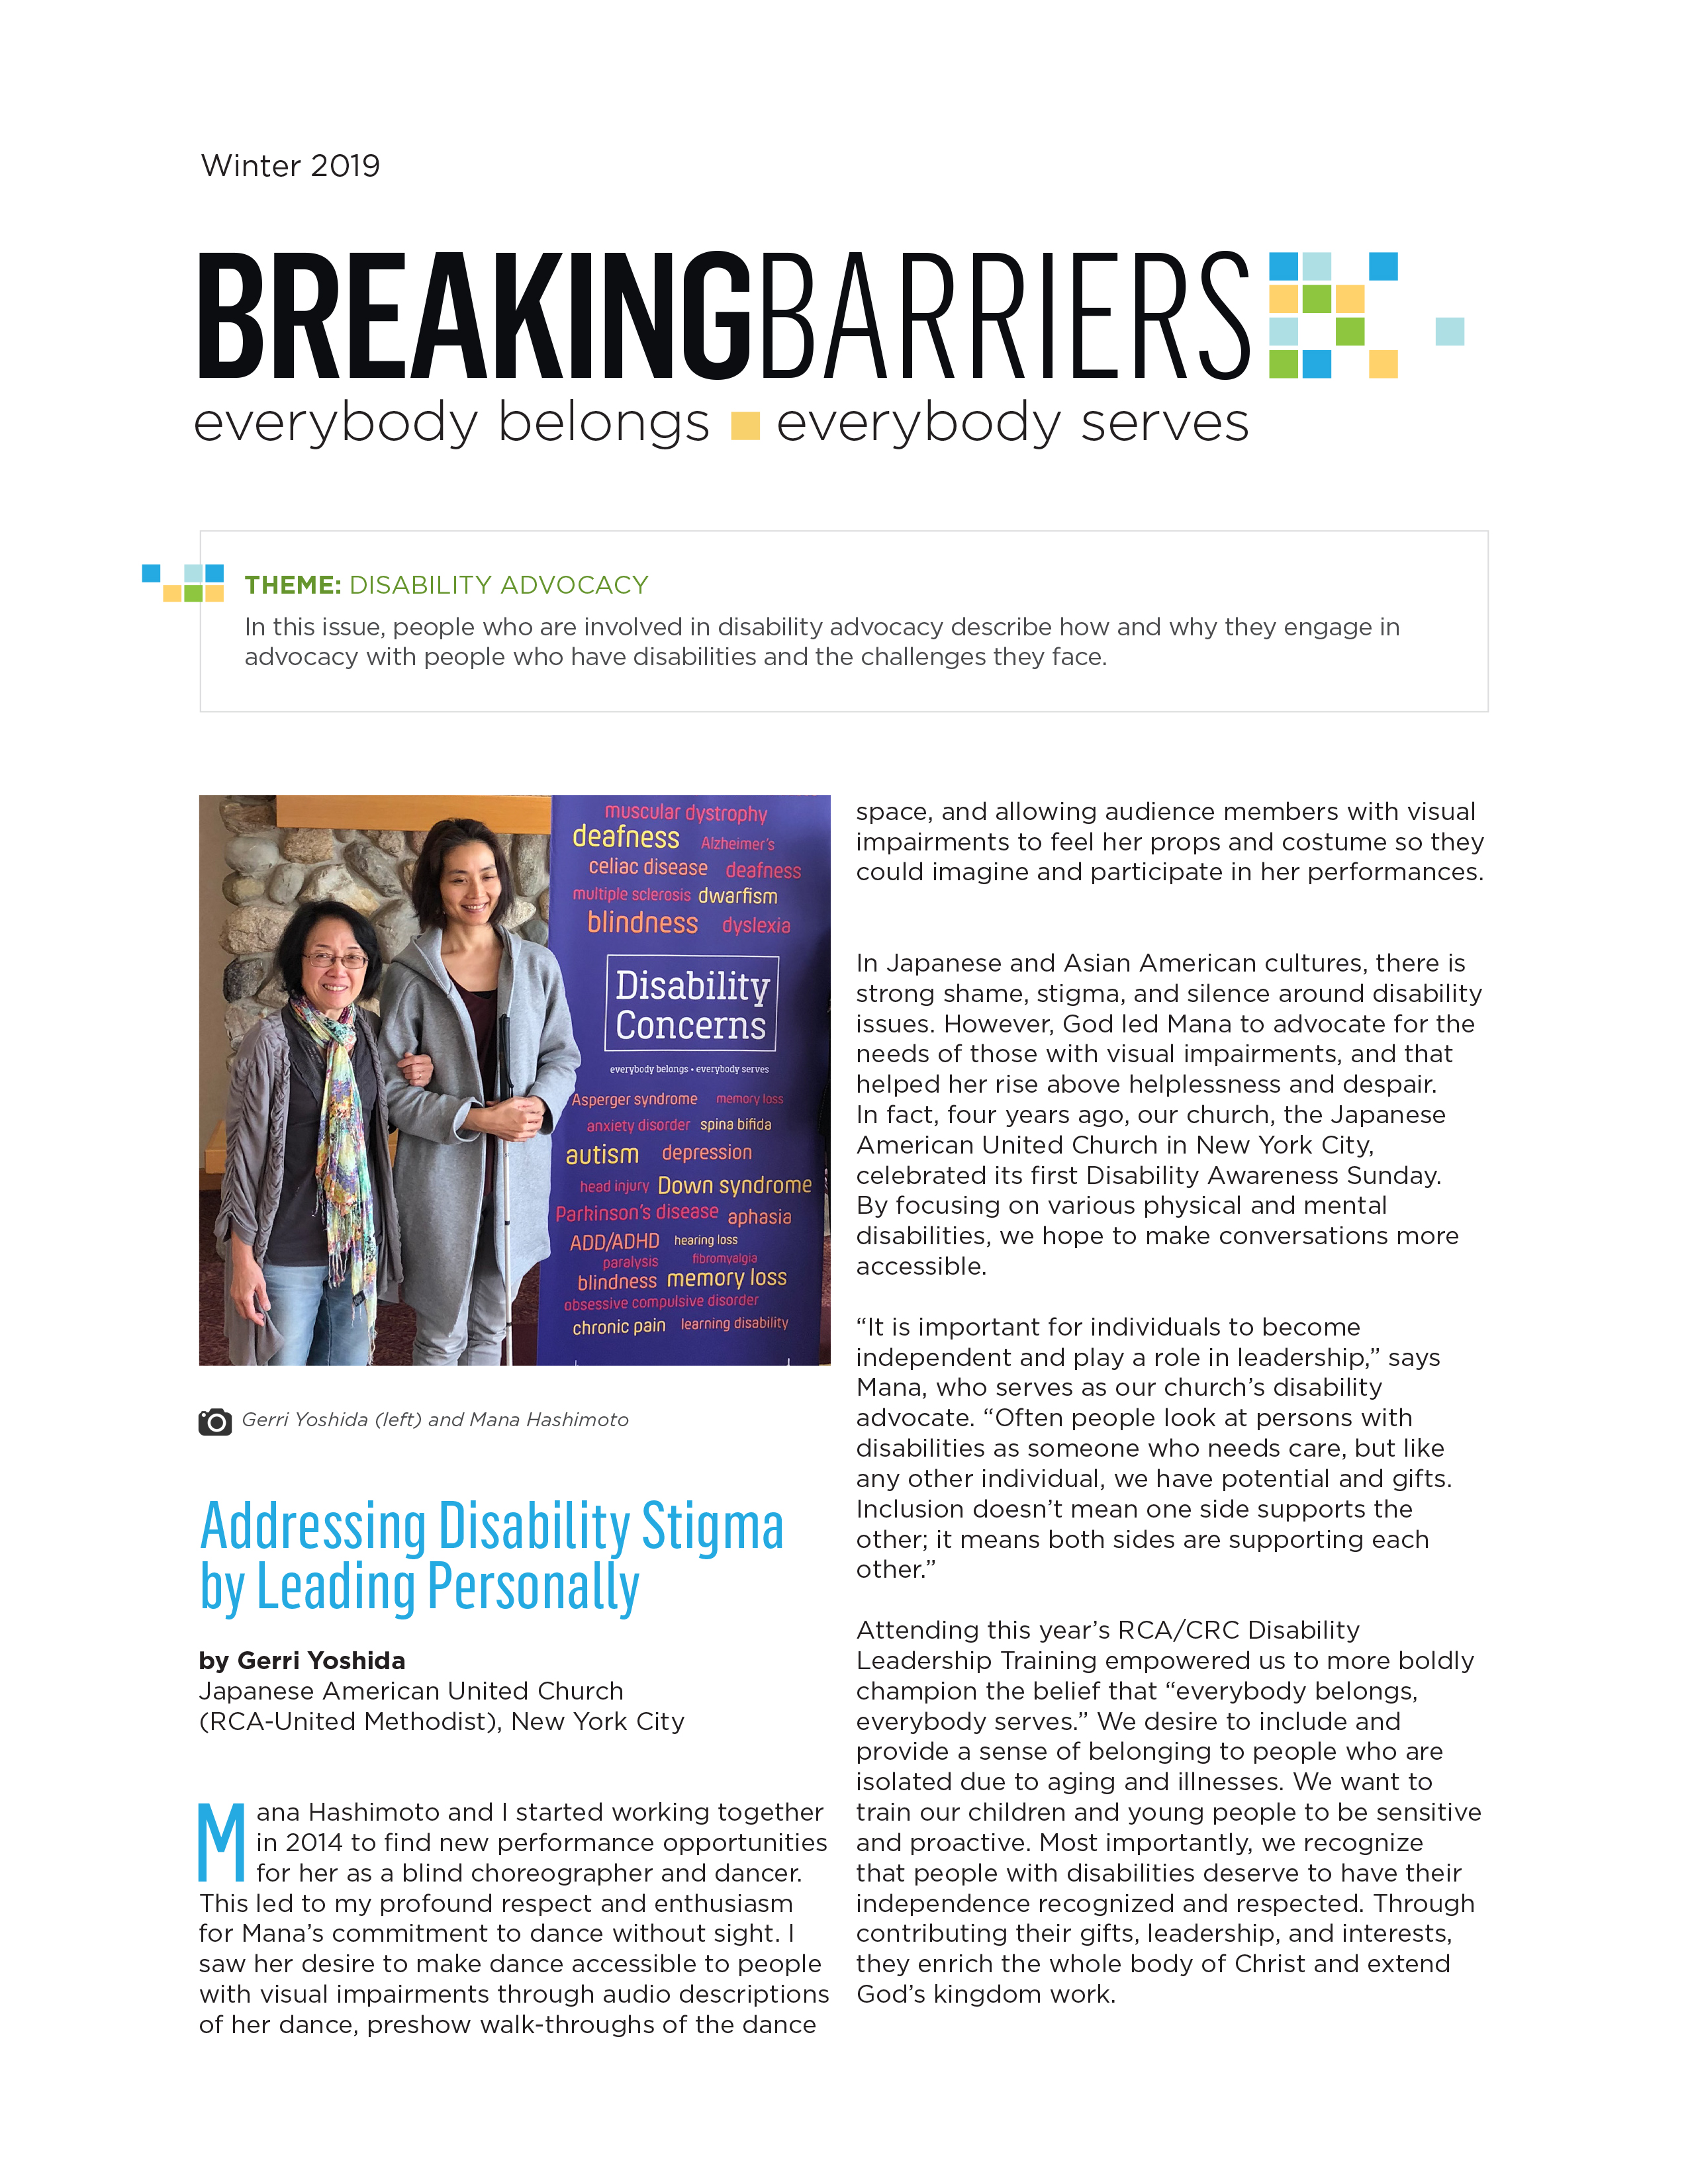 Breaking Barriers Newsletter